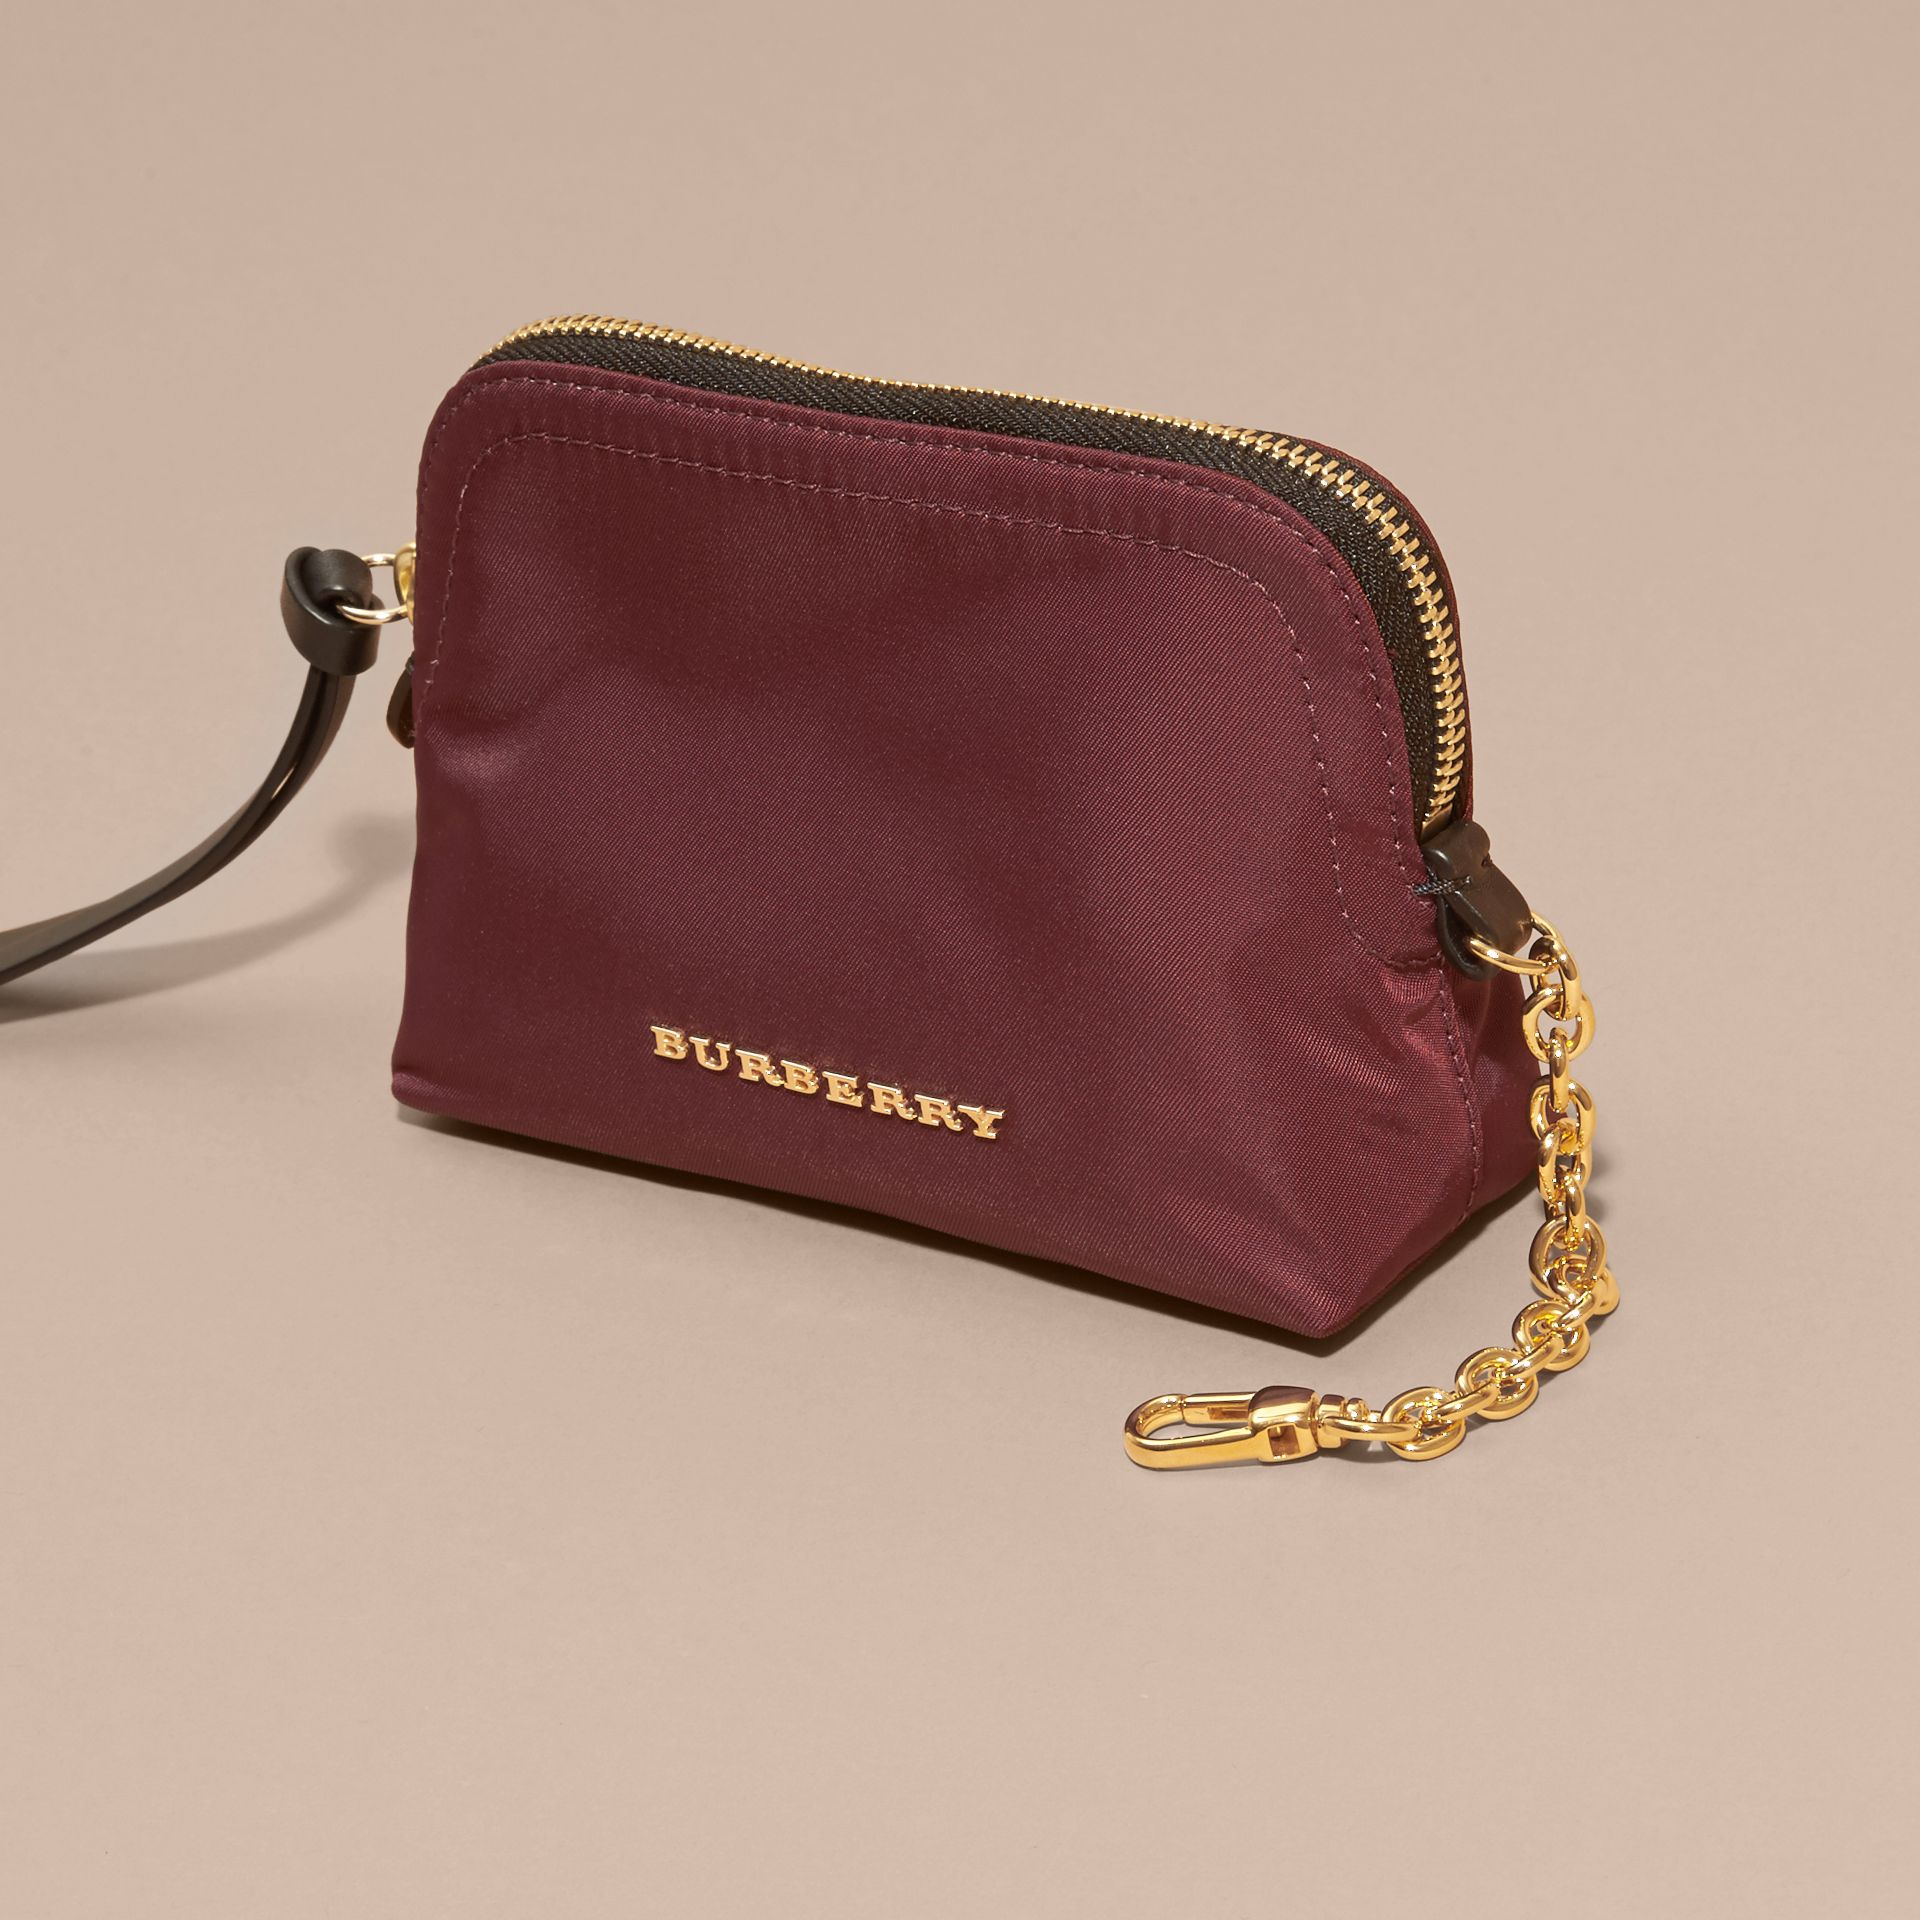 Burgundy red Small Zip-top Technical Nylon Pouch Burgundy Red - gallery image 3